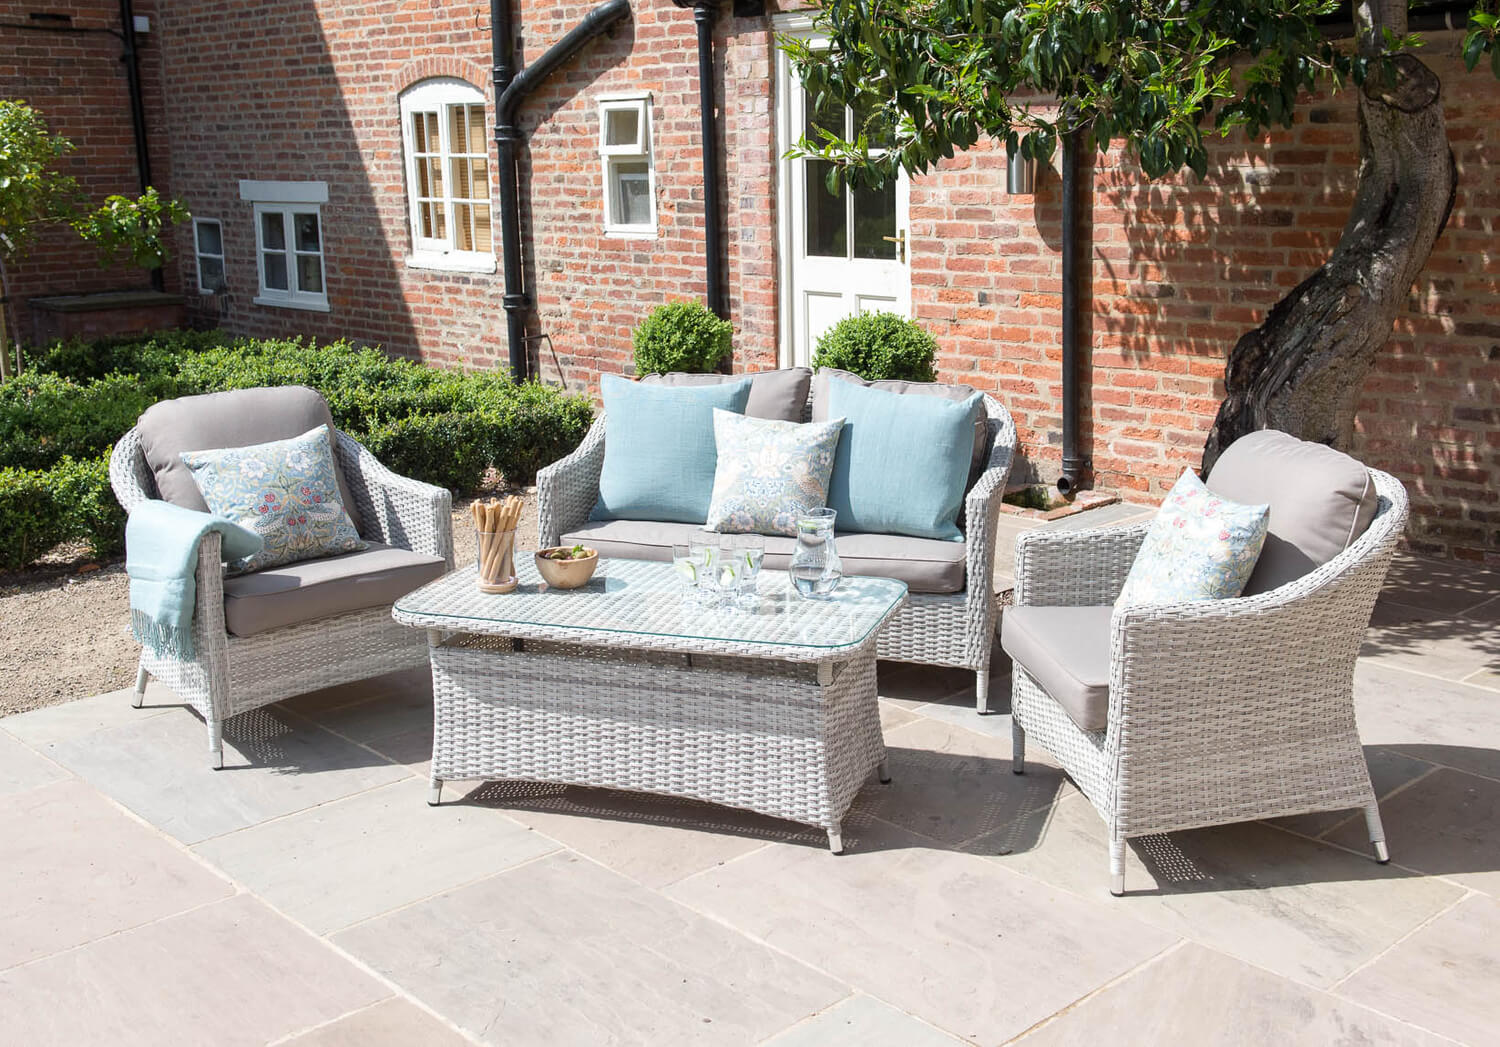 Black Friday Event. Cotswold Rattan Weave Lounge Furniture and Table Set    664 05